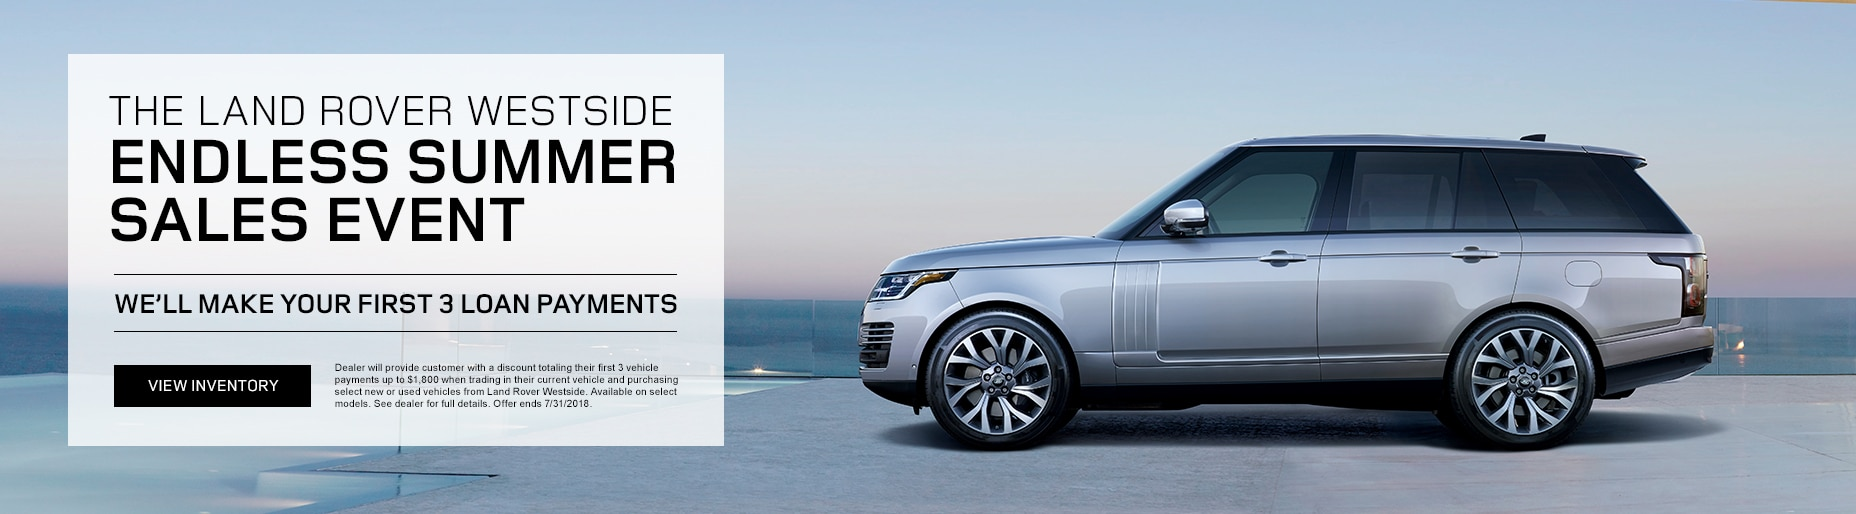 Land Rover Dealer Cleveland OH | Land Rover Westside